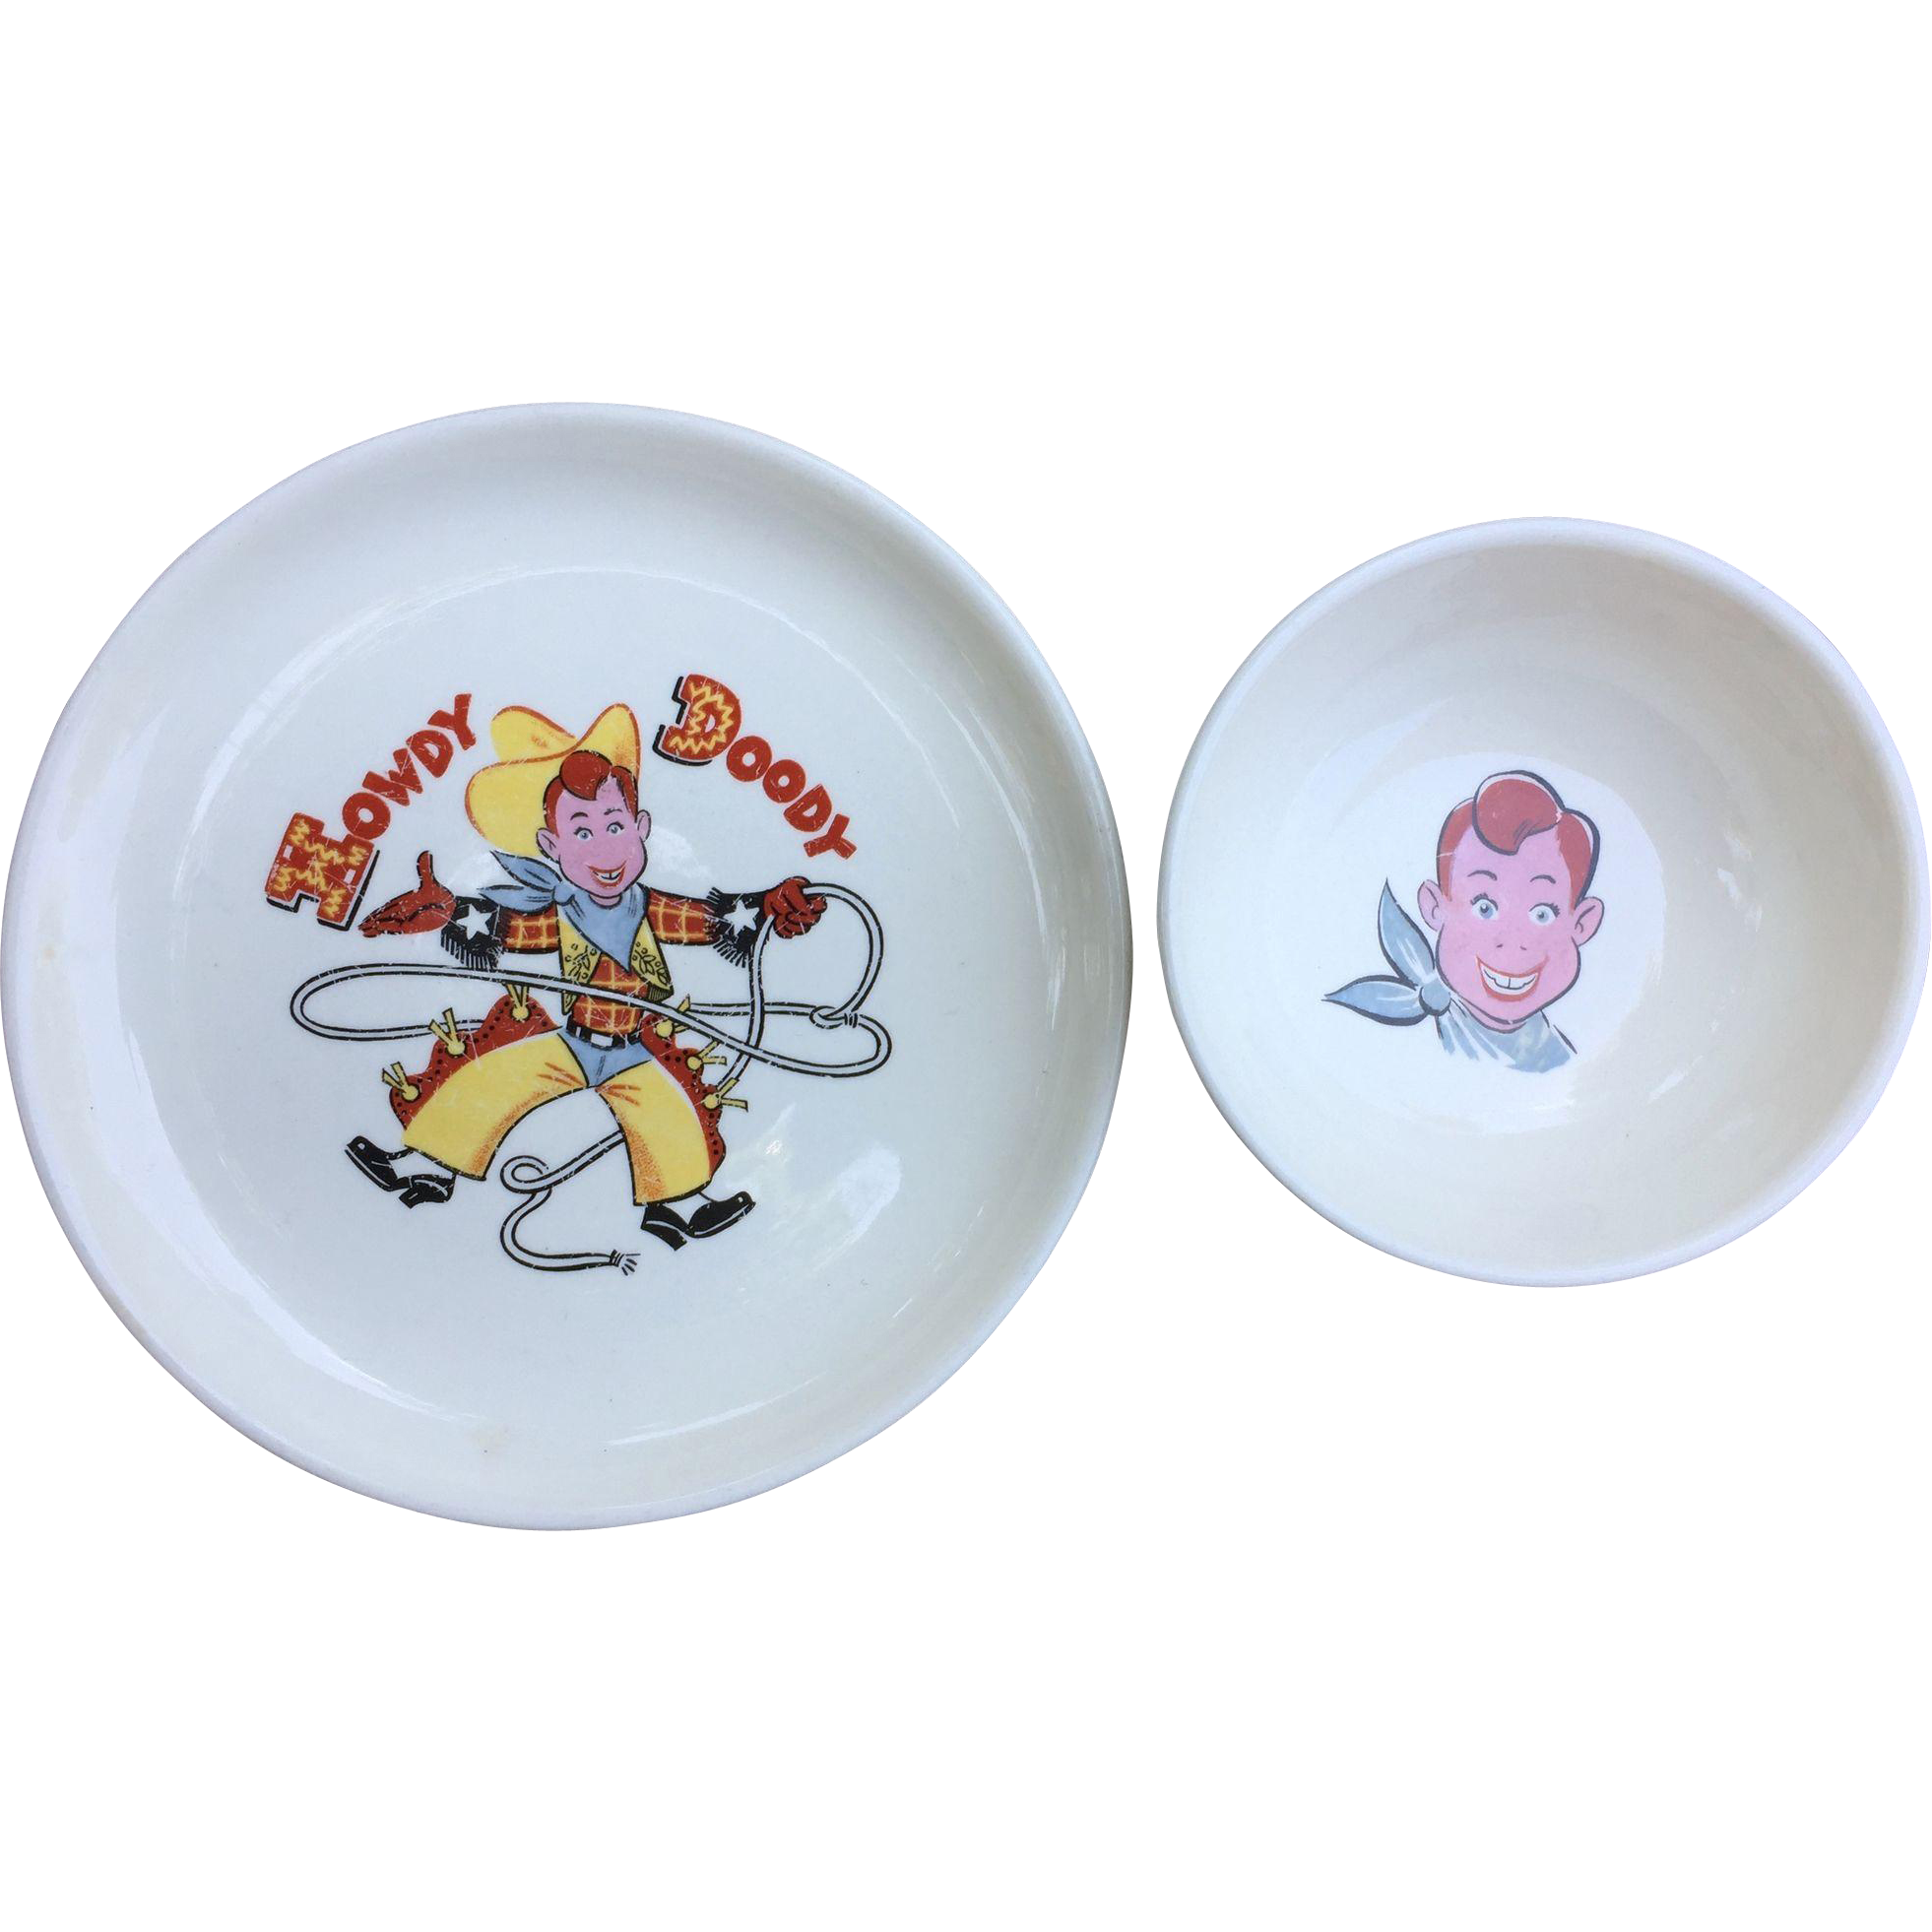 Howdy Doody 1950's Child's Dinner Plate and Bowl Colorful & Nice!